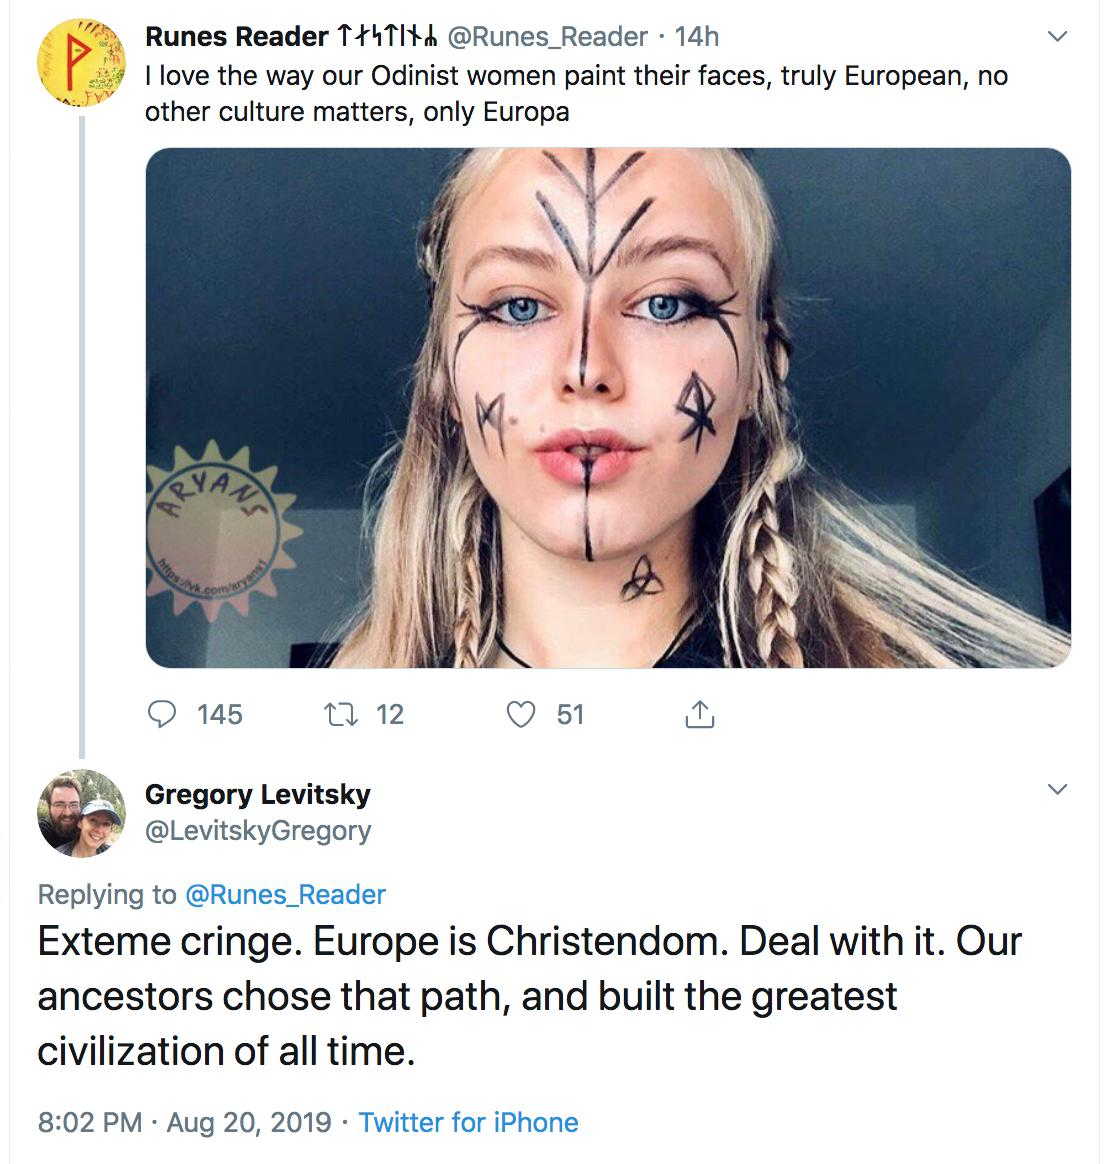 uh-oh, the pagan white supremacists and the Christian white supremacists are feuding. *gets popcorn*